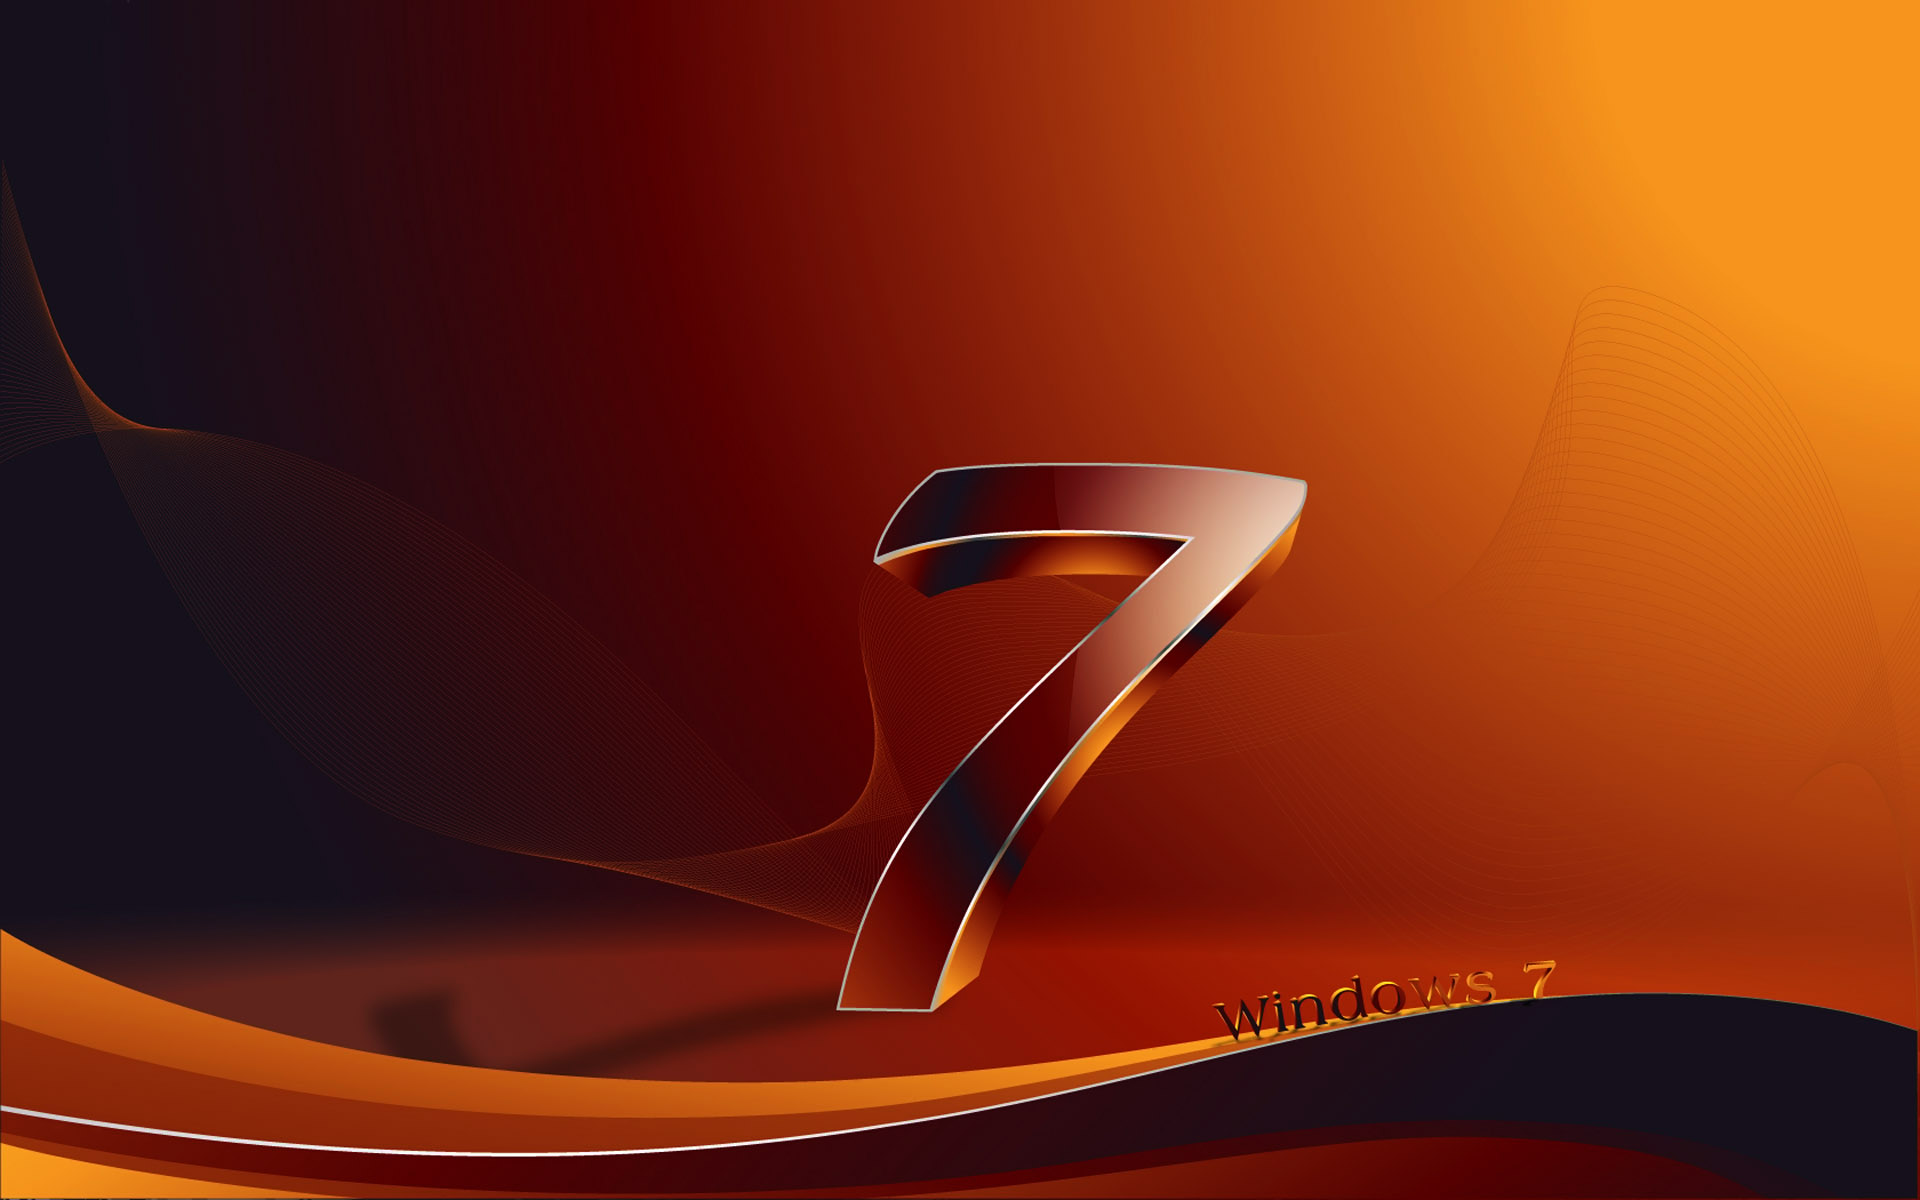 Windows 7 Wallpaper 3D